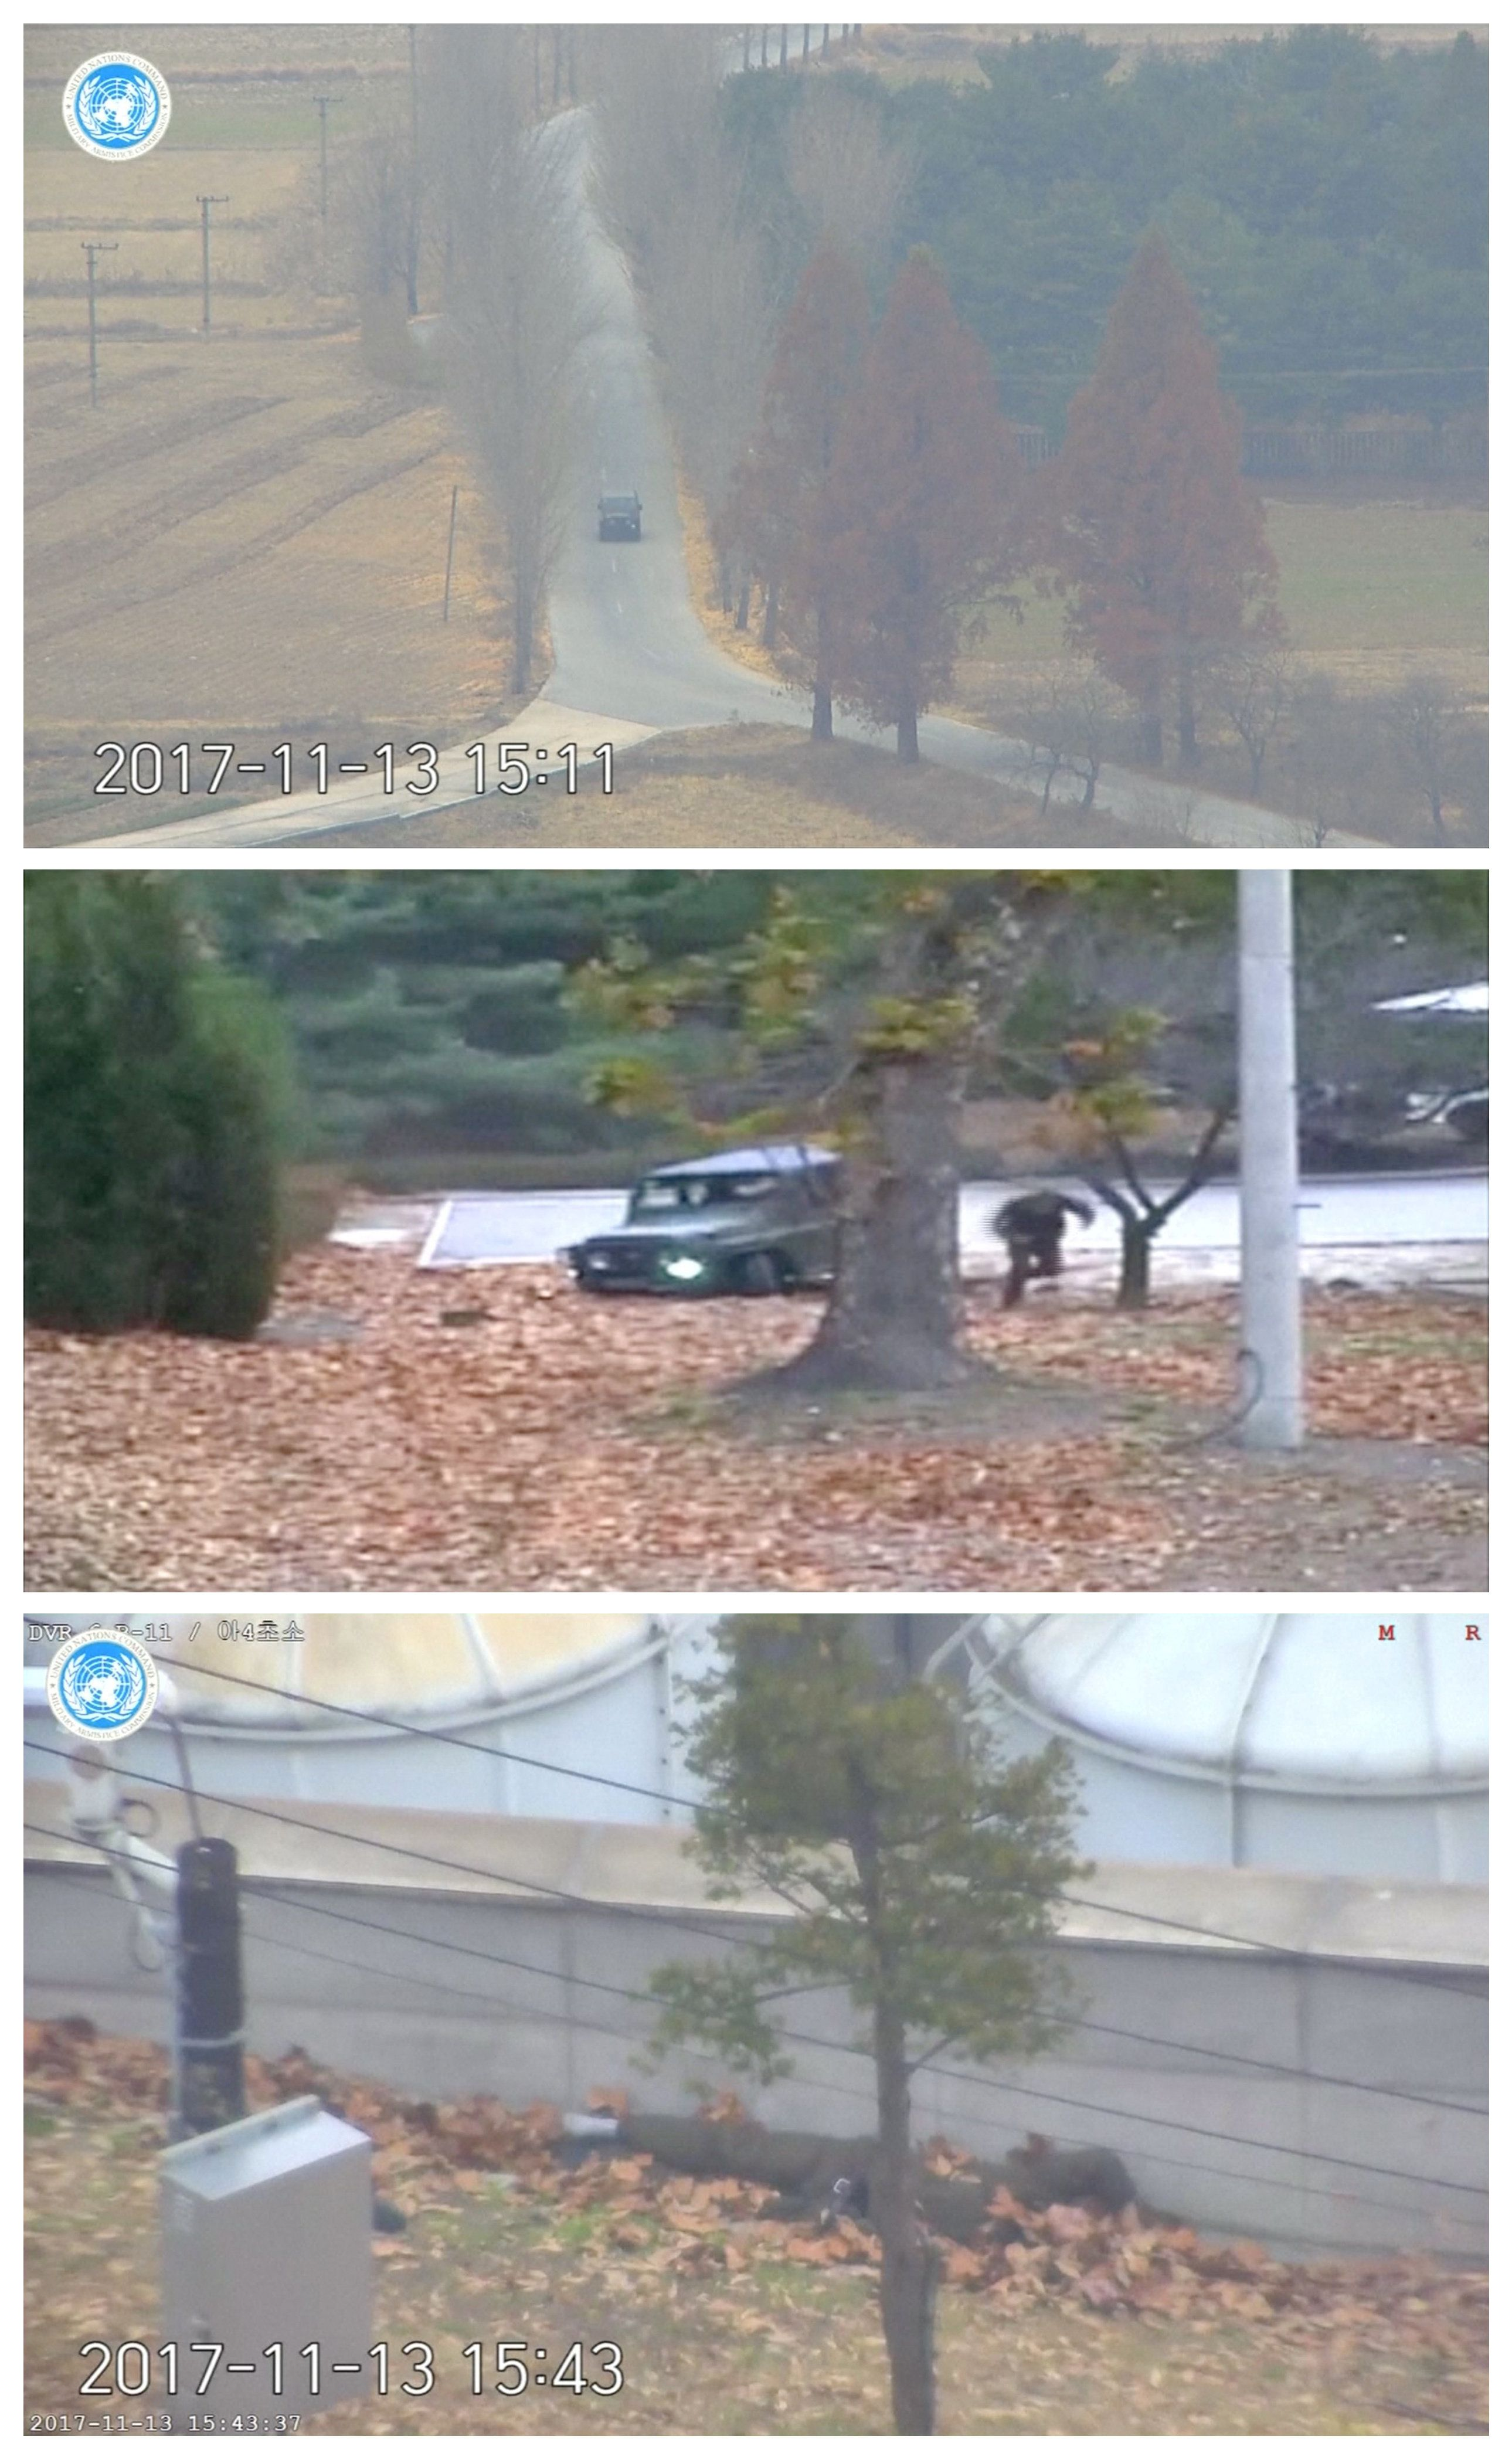 Stunning CCTV Footage Shows North Korean Defector Being Shot By Border